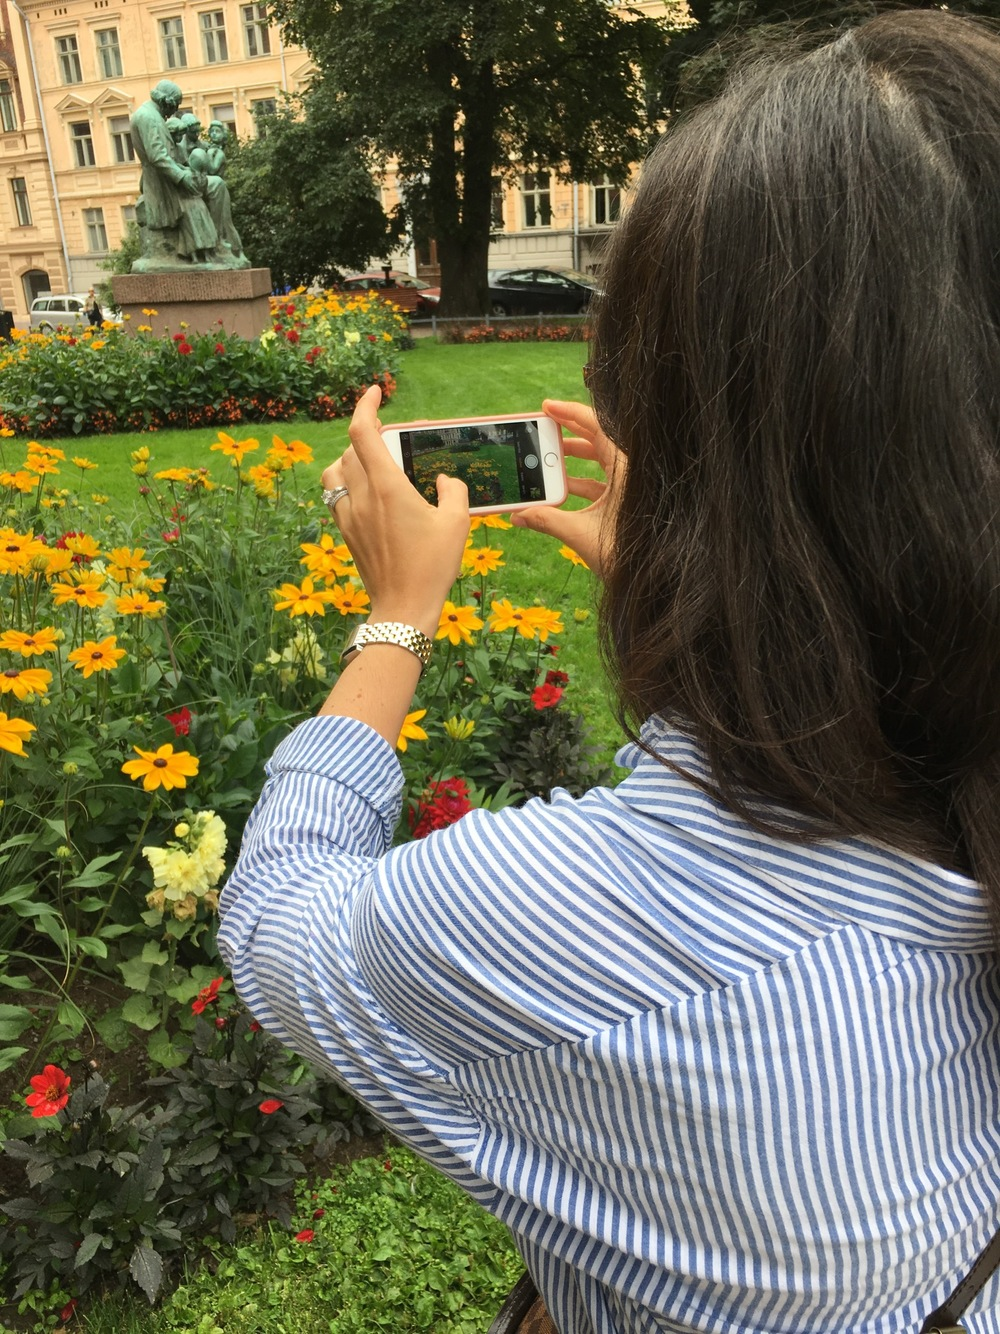 Dan caught me taking pictures of flowers - my favorite